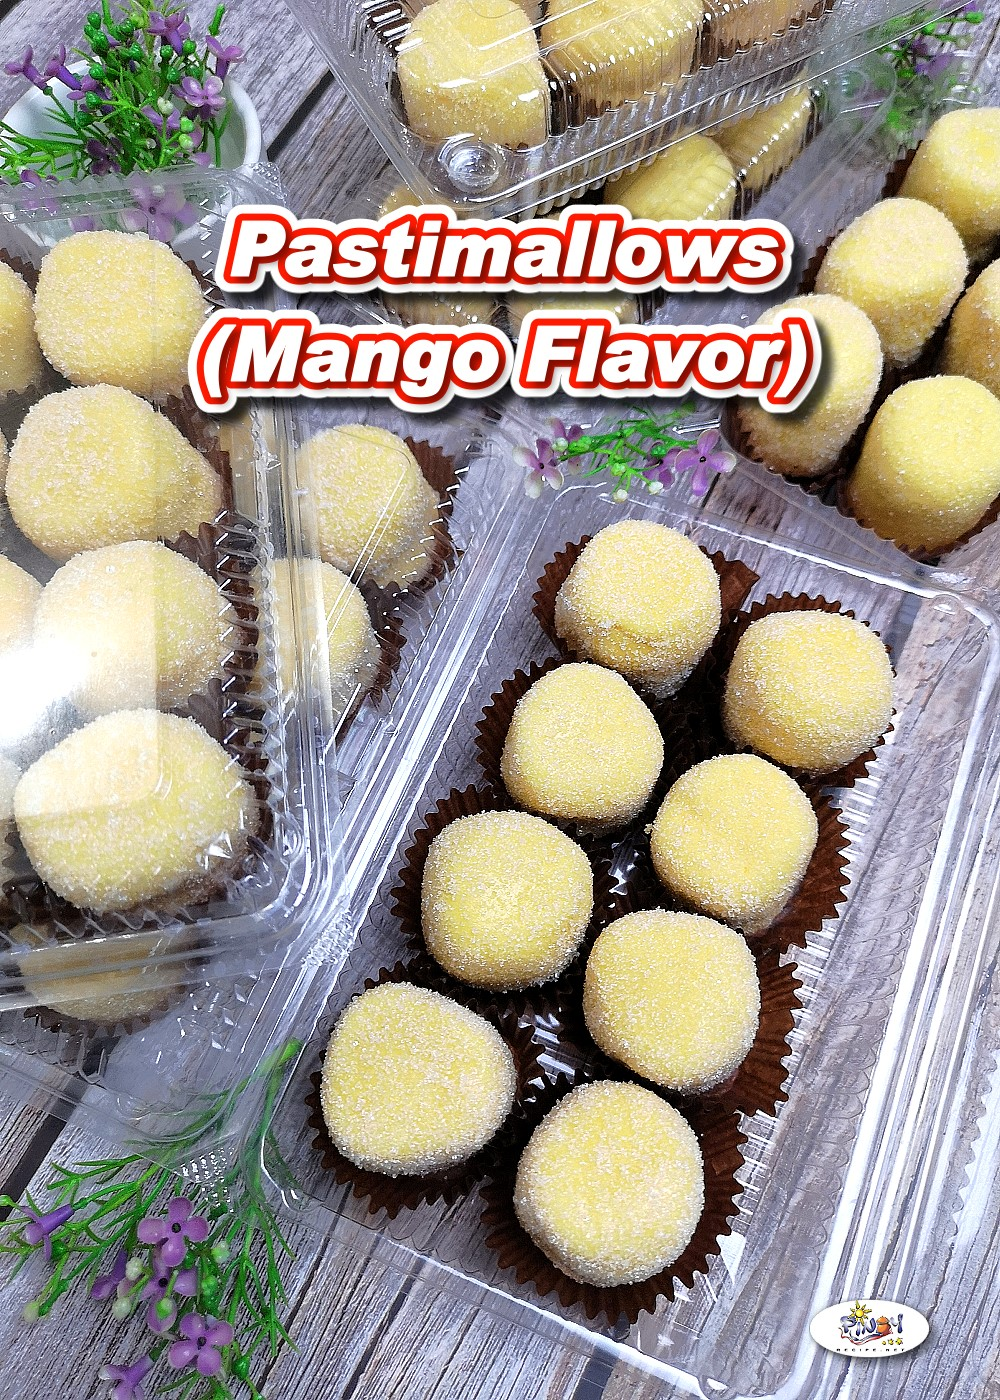 Pastimallows Recipe Mango Flavor pang Negosyo with Costing